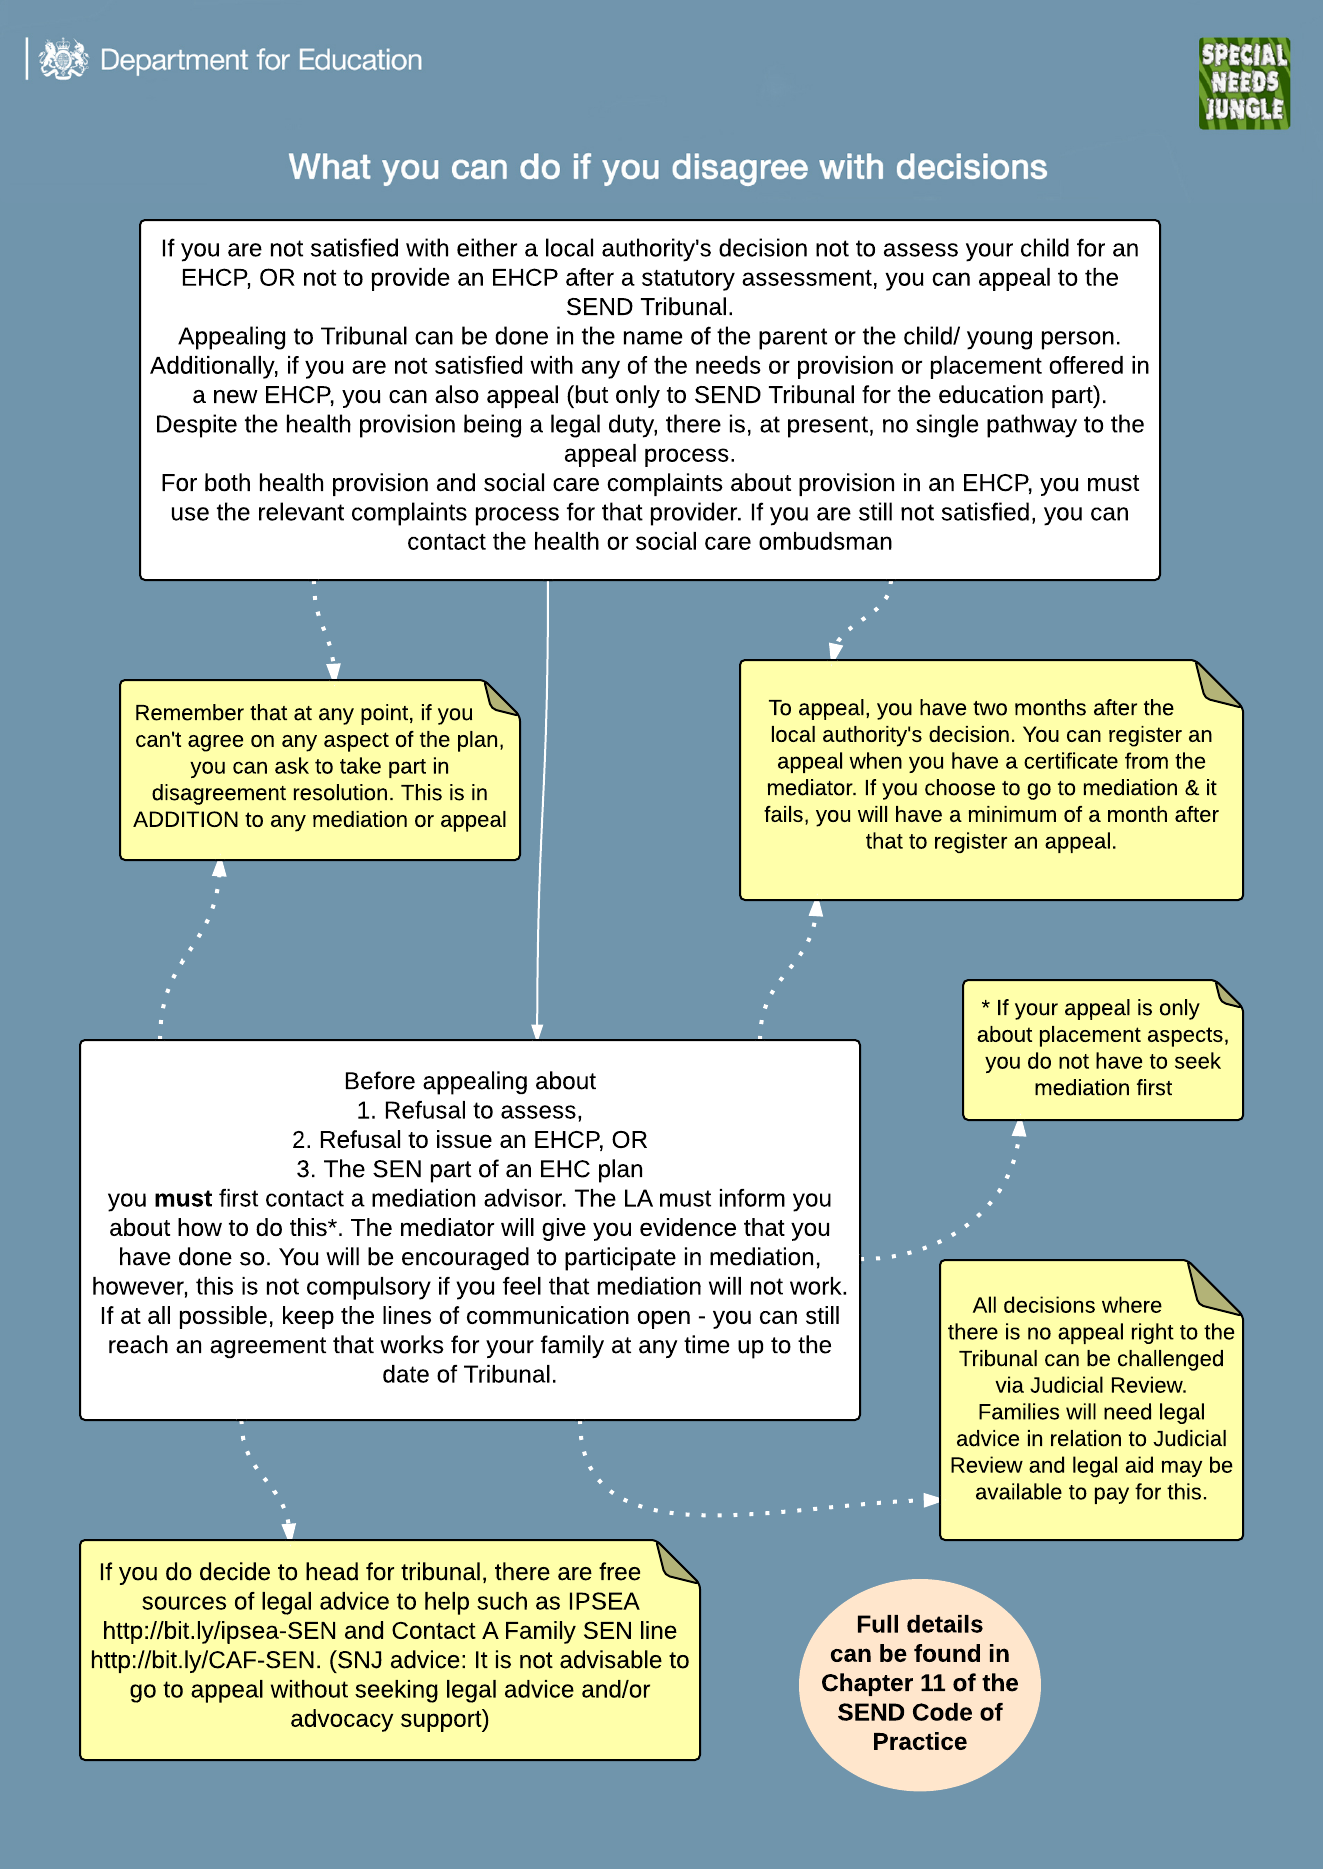 Day 4 the flow chart for if you disagree with sen provision or day 4 the flow chart for if you disagree with sen provision or lack of it nvjuhfo Choice Image